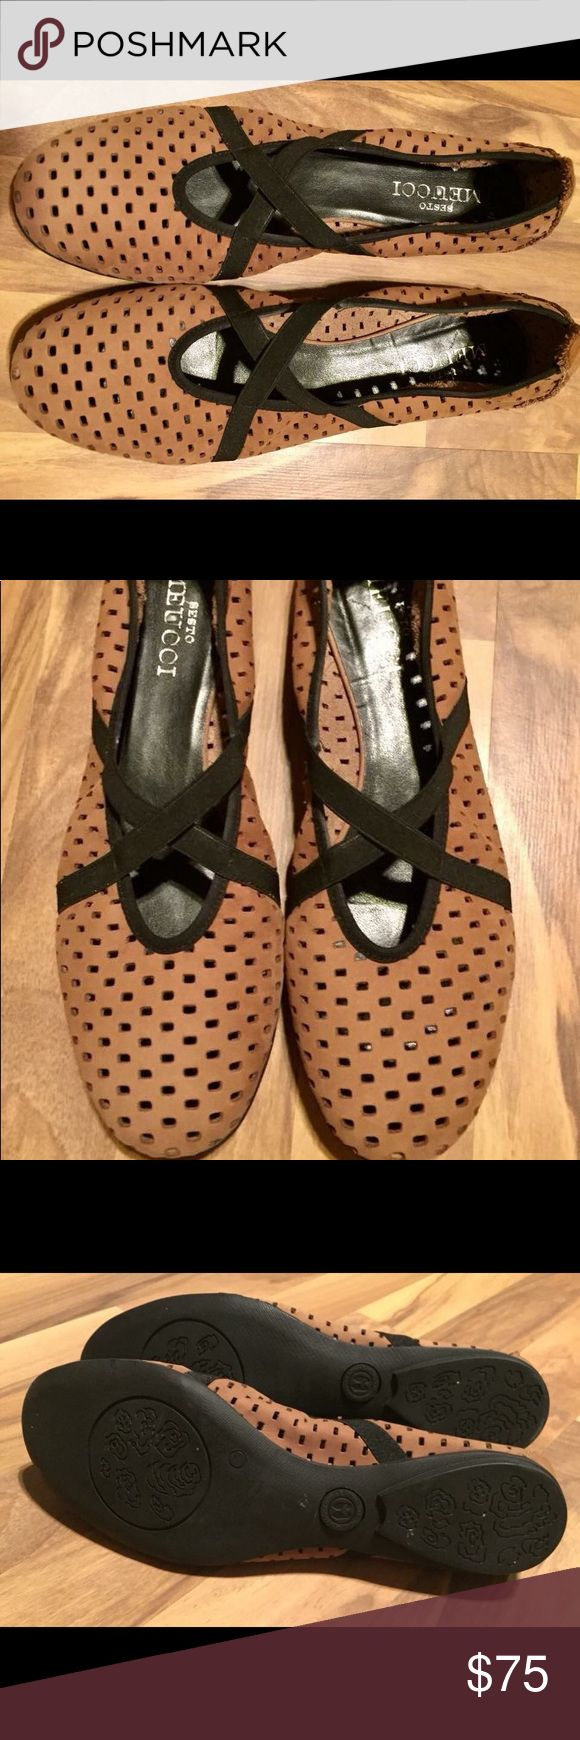 Pair of Sesto Meucci ladies shoes (SZ 8) worn 1x Light brown(camel color) suede with black...these are adorable, comfortable, high quality shoes that are basically brand new. Retail for $200. Worn one time for a few hours. True to size. Sesto Meucci Shoes Flats & Loafers